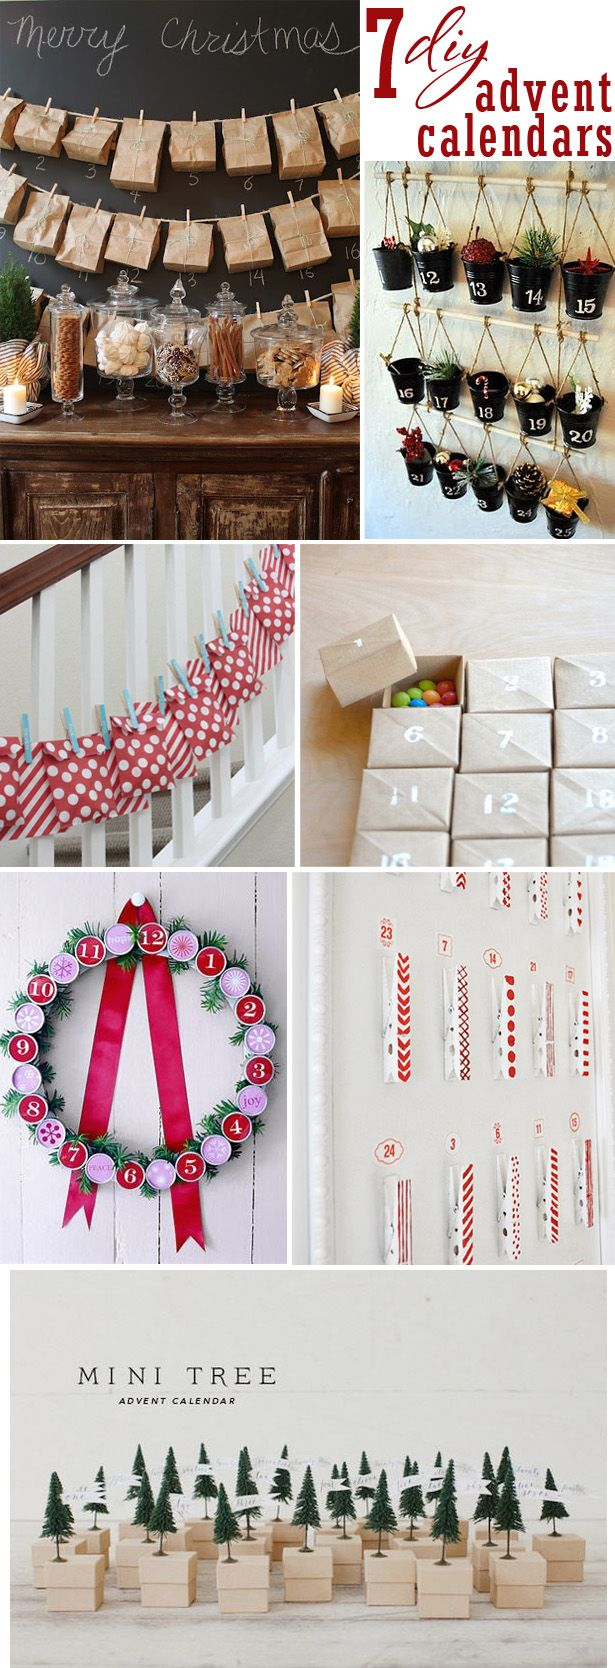 It's not too late to create a fun and festive advent calendar for your family this year! Maybe count down